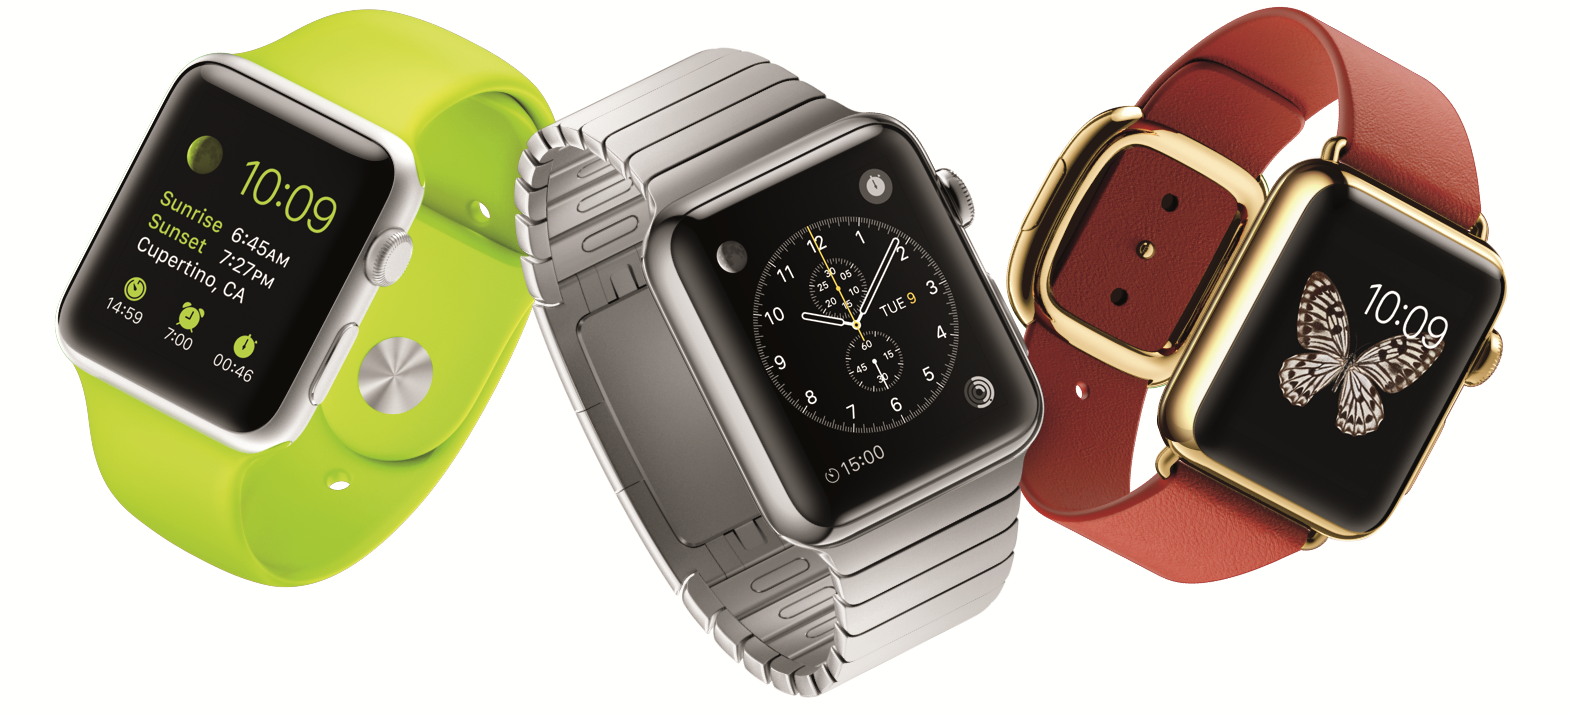 Smartwatch Shipments Are Up 60 Per Cent – or Down 52 Per Cent, Depending on Who You Ask